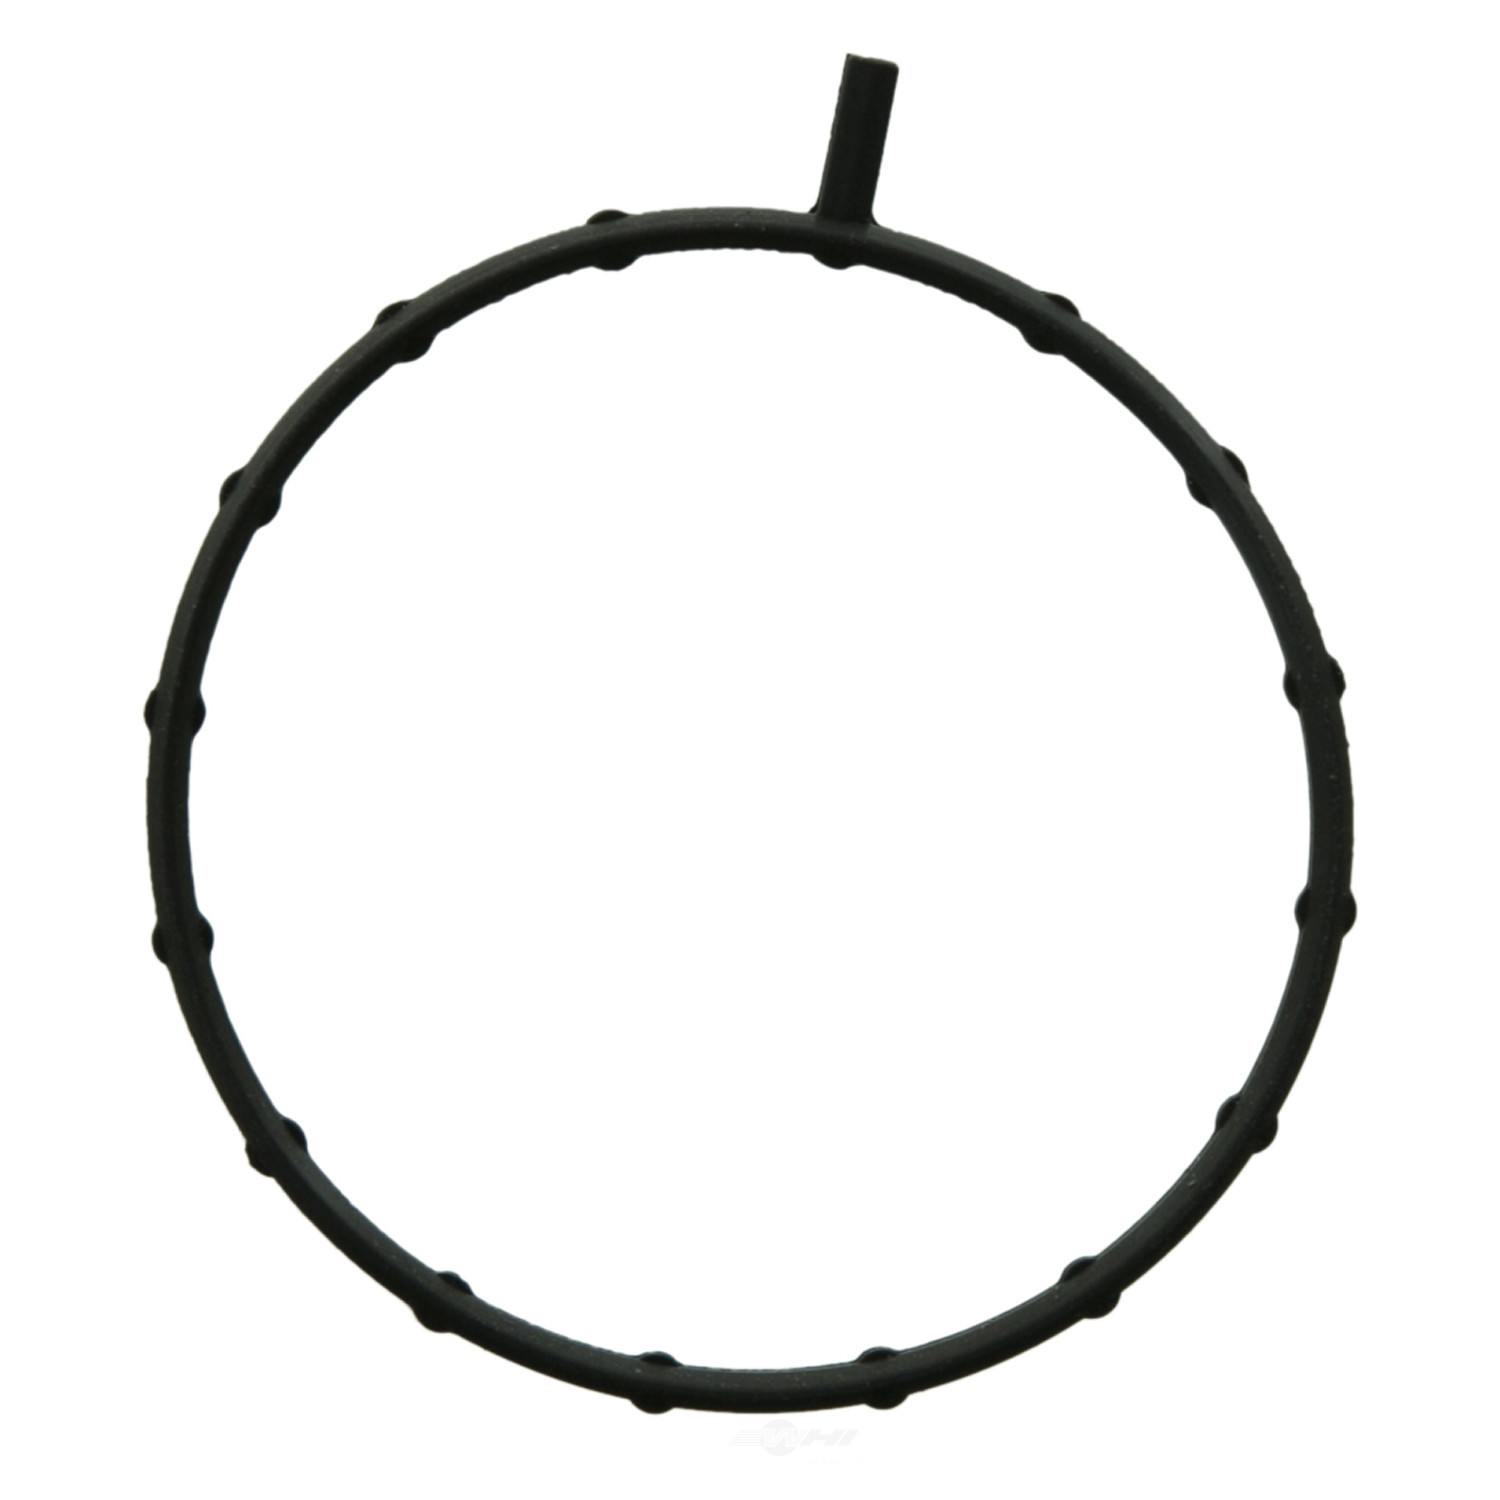 FELPRO - Fuel Injection Throttle Body Mounting Gasket - FEL 61729